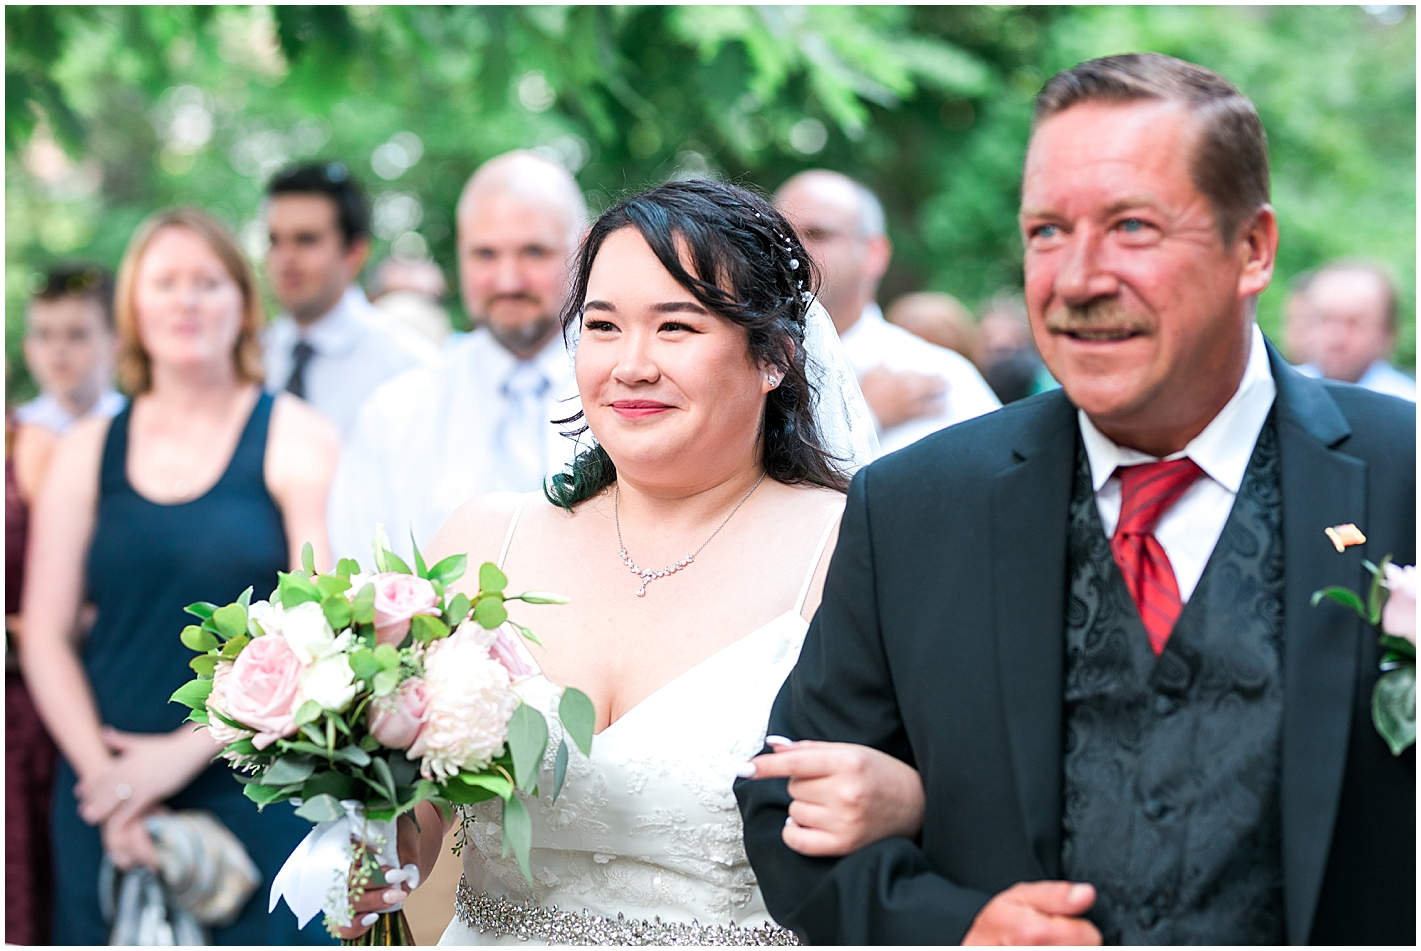 Father walks daughter down aisle photo by Alyssa Parker Photography